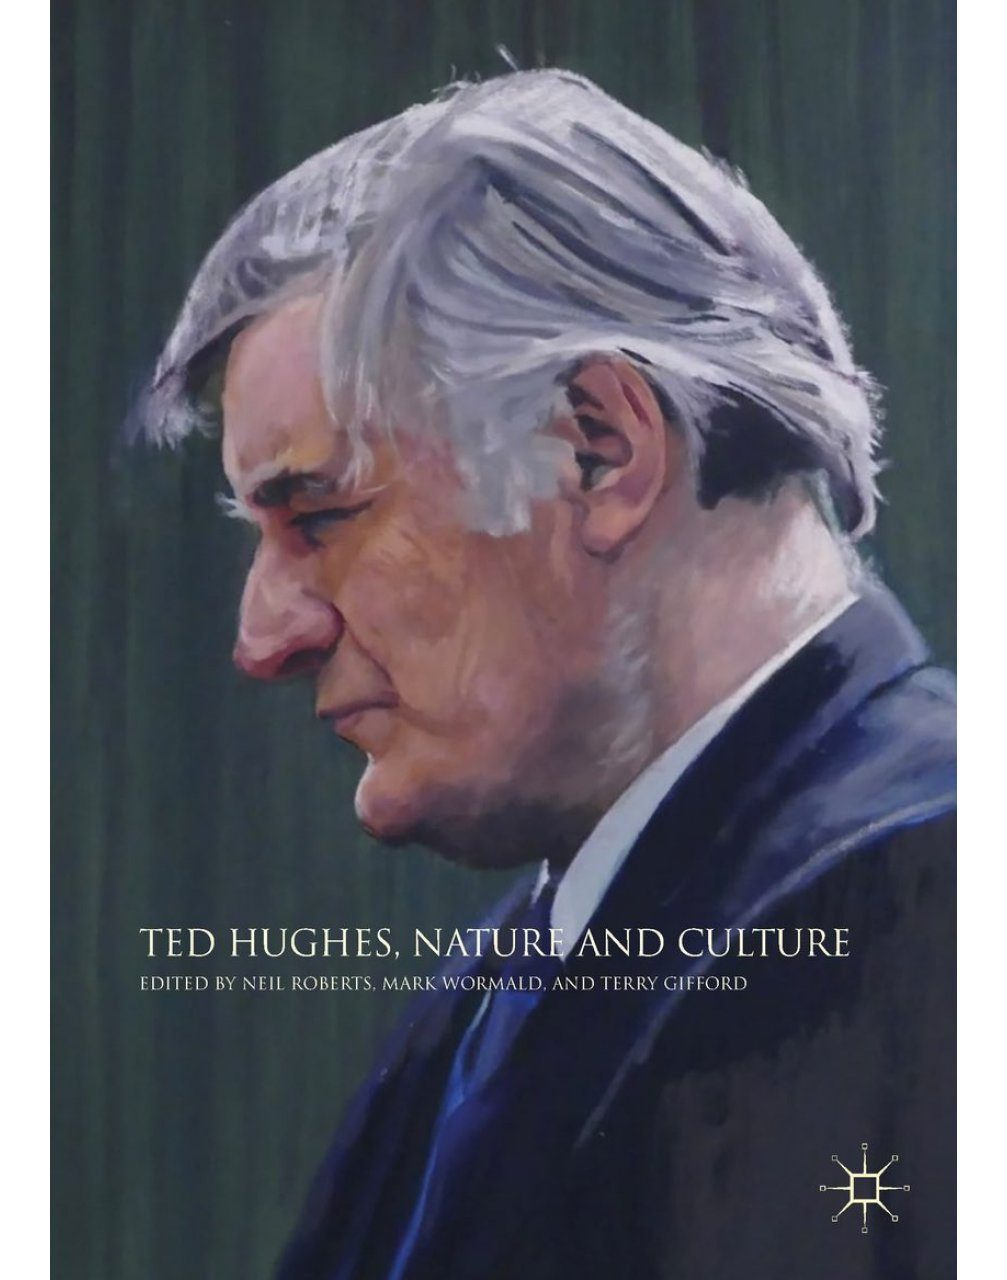 Ted Hughes, Nature and Culture